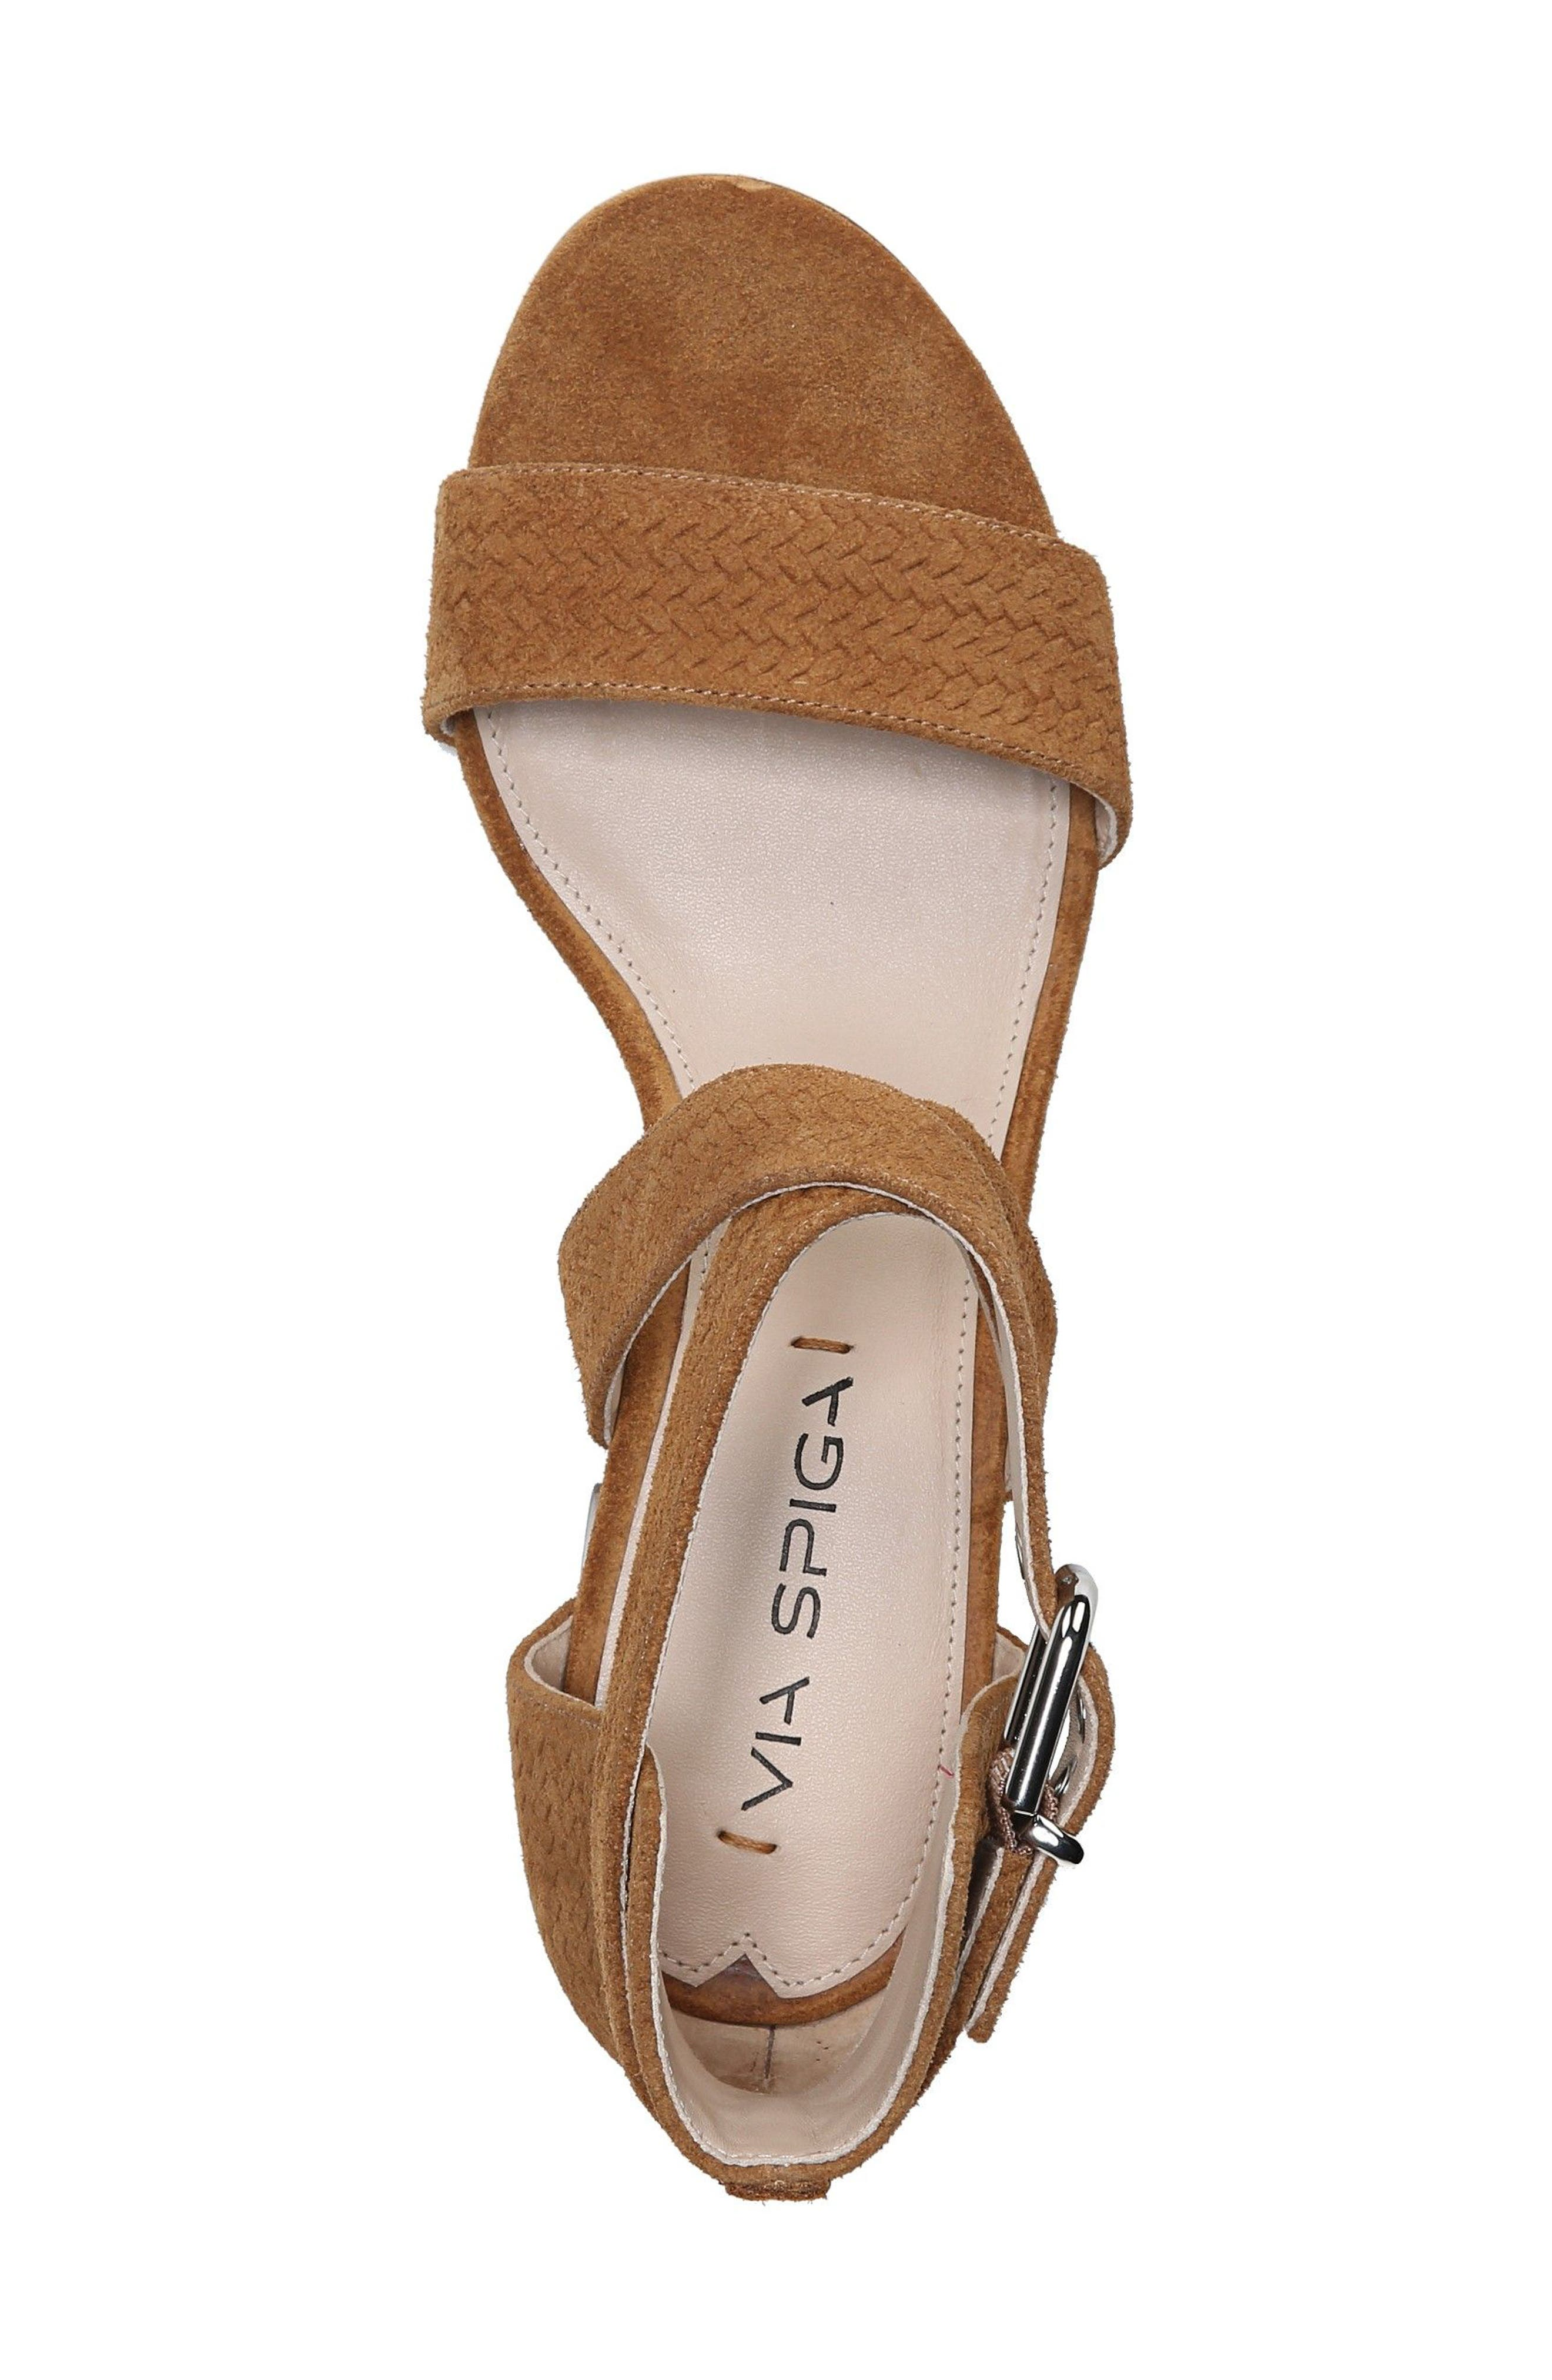 'Jobina' Crisscross Strap Block Heel Sandal,                             Alternate thumbnail 3, color,                             Tawny Suede